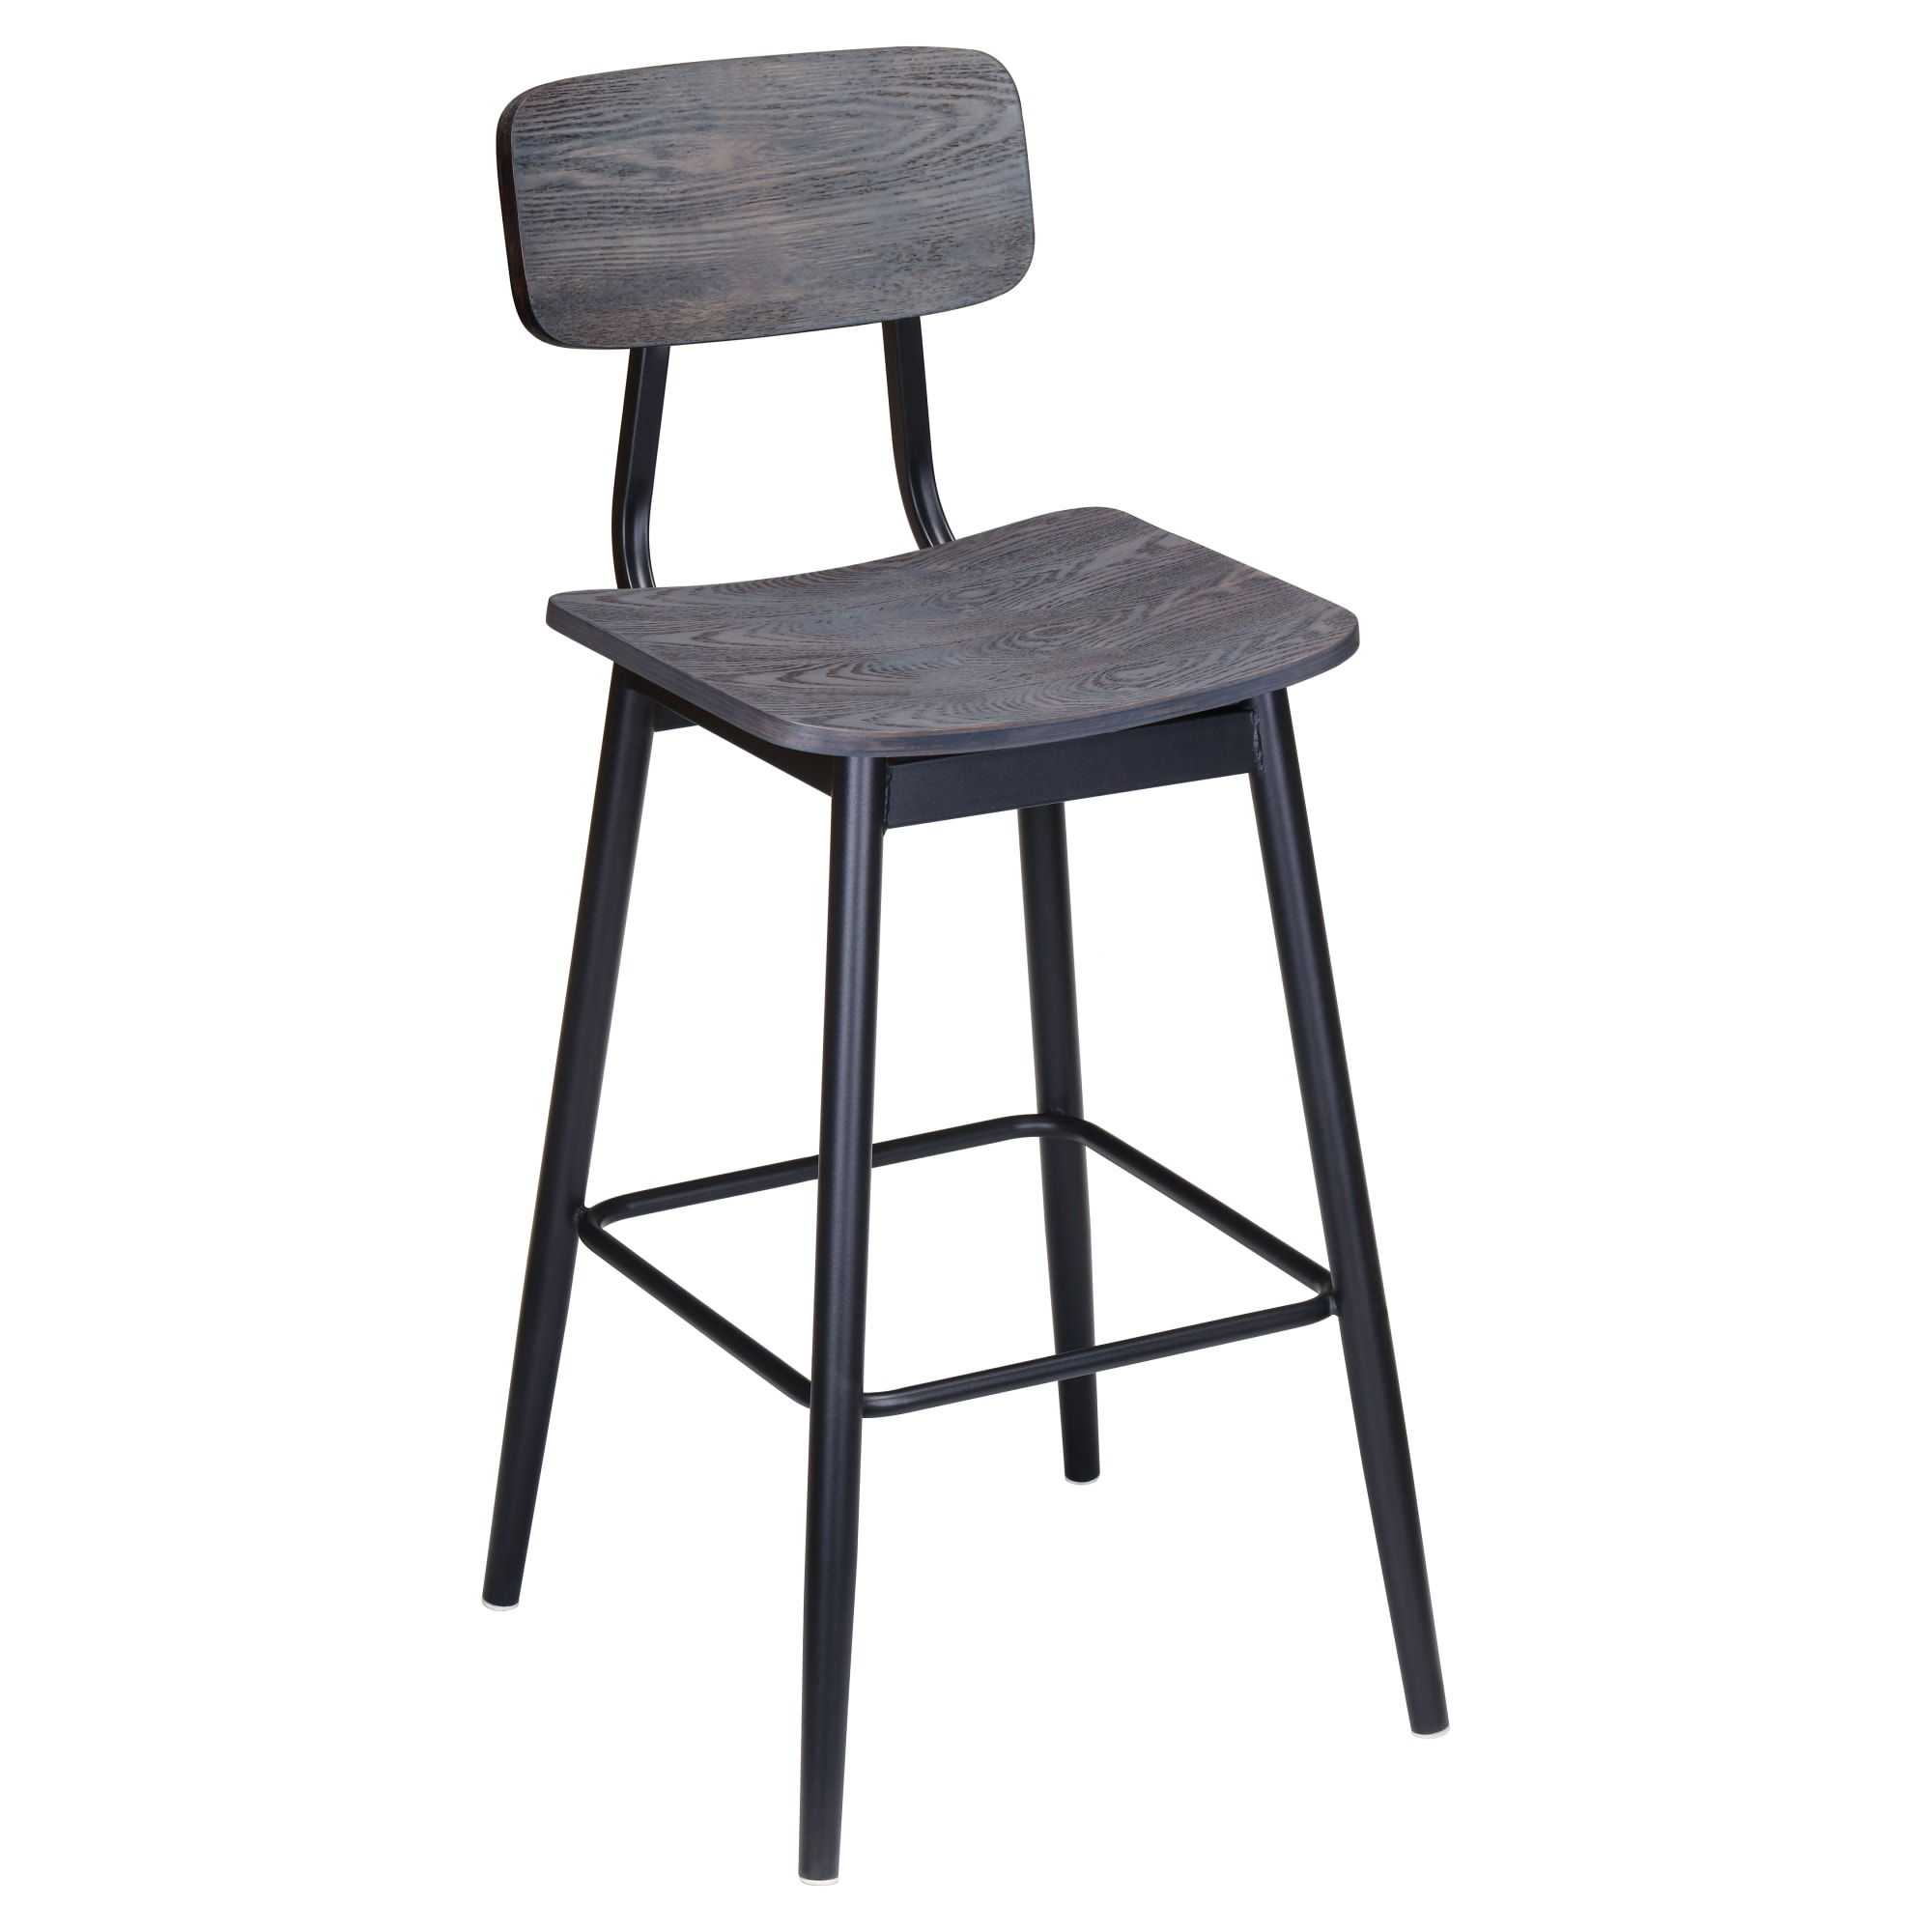 Basel Metal Bar Stool with Veneer Back and Seat with Basel Metal Bar Stool with Veneer Back and Seat